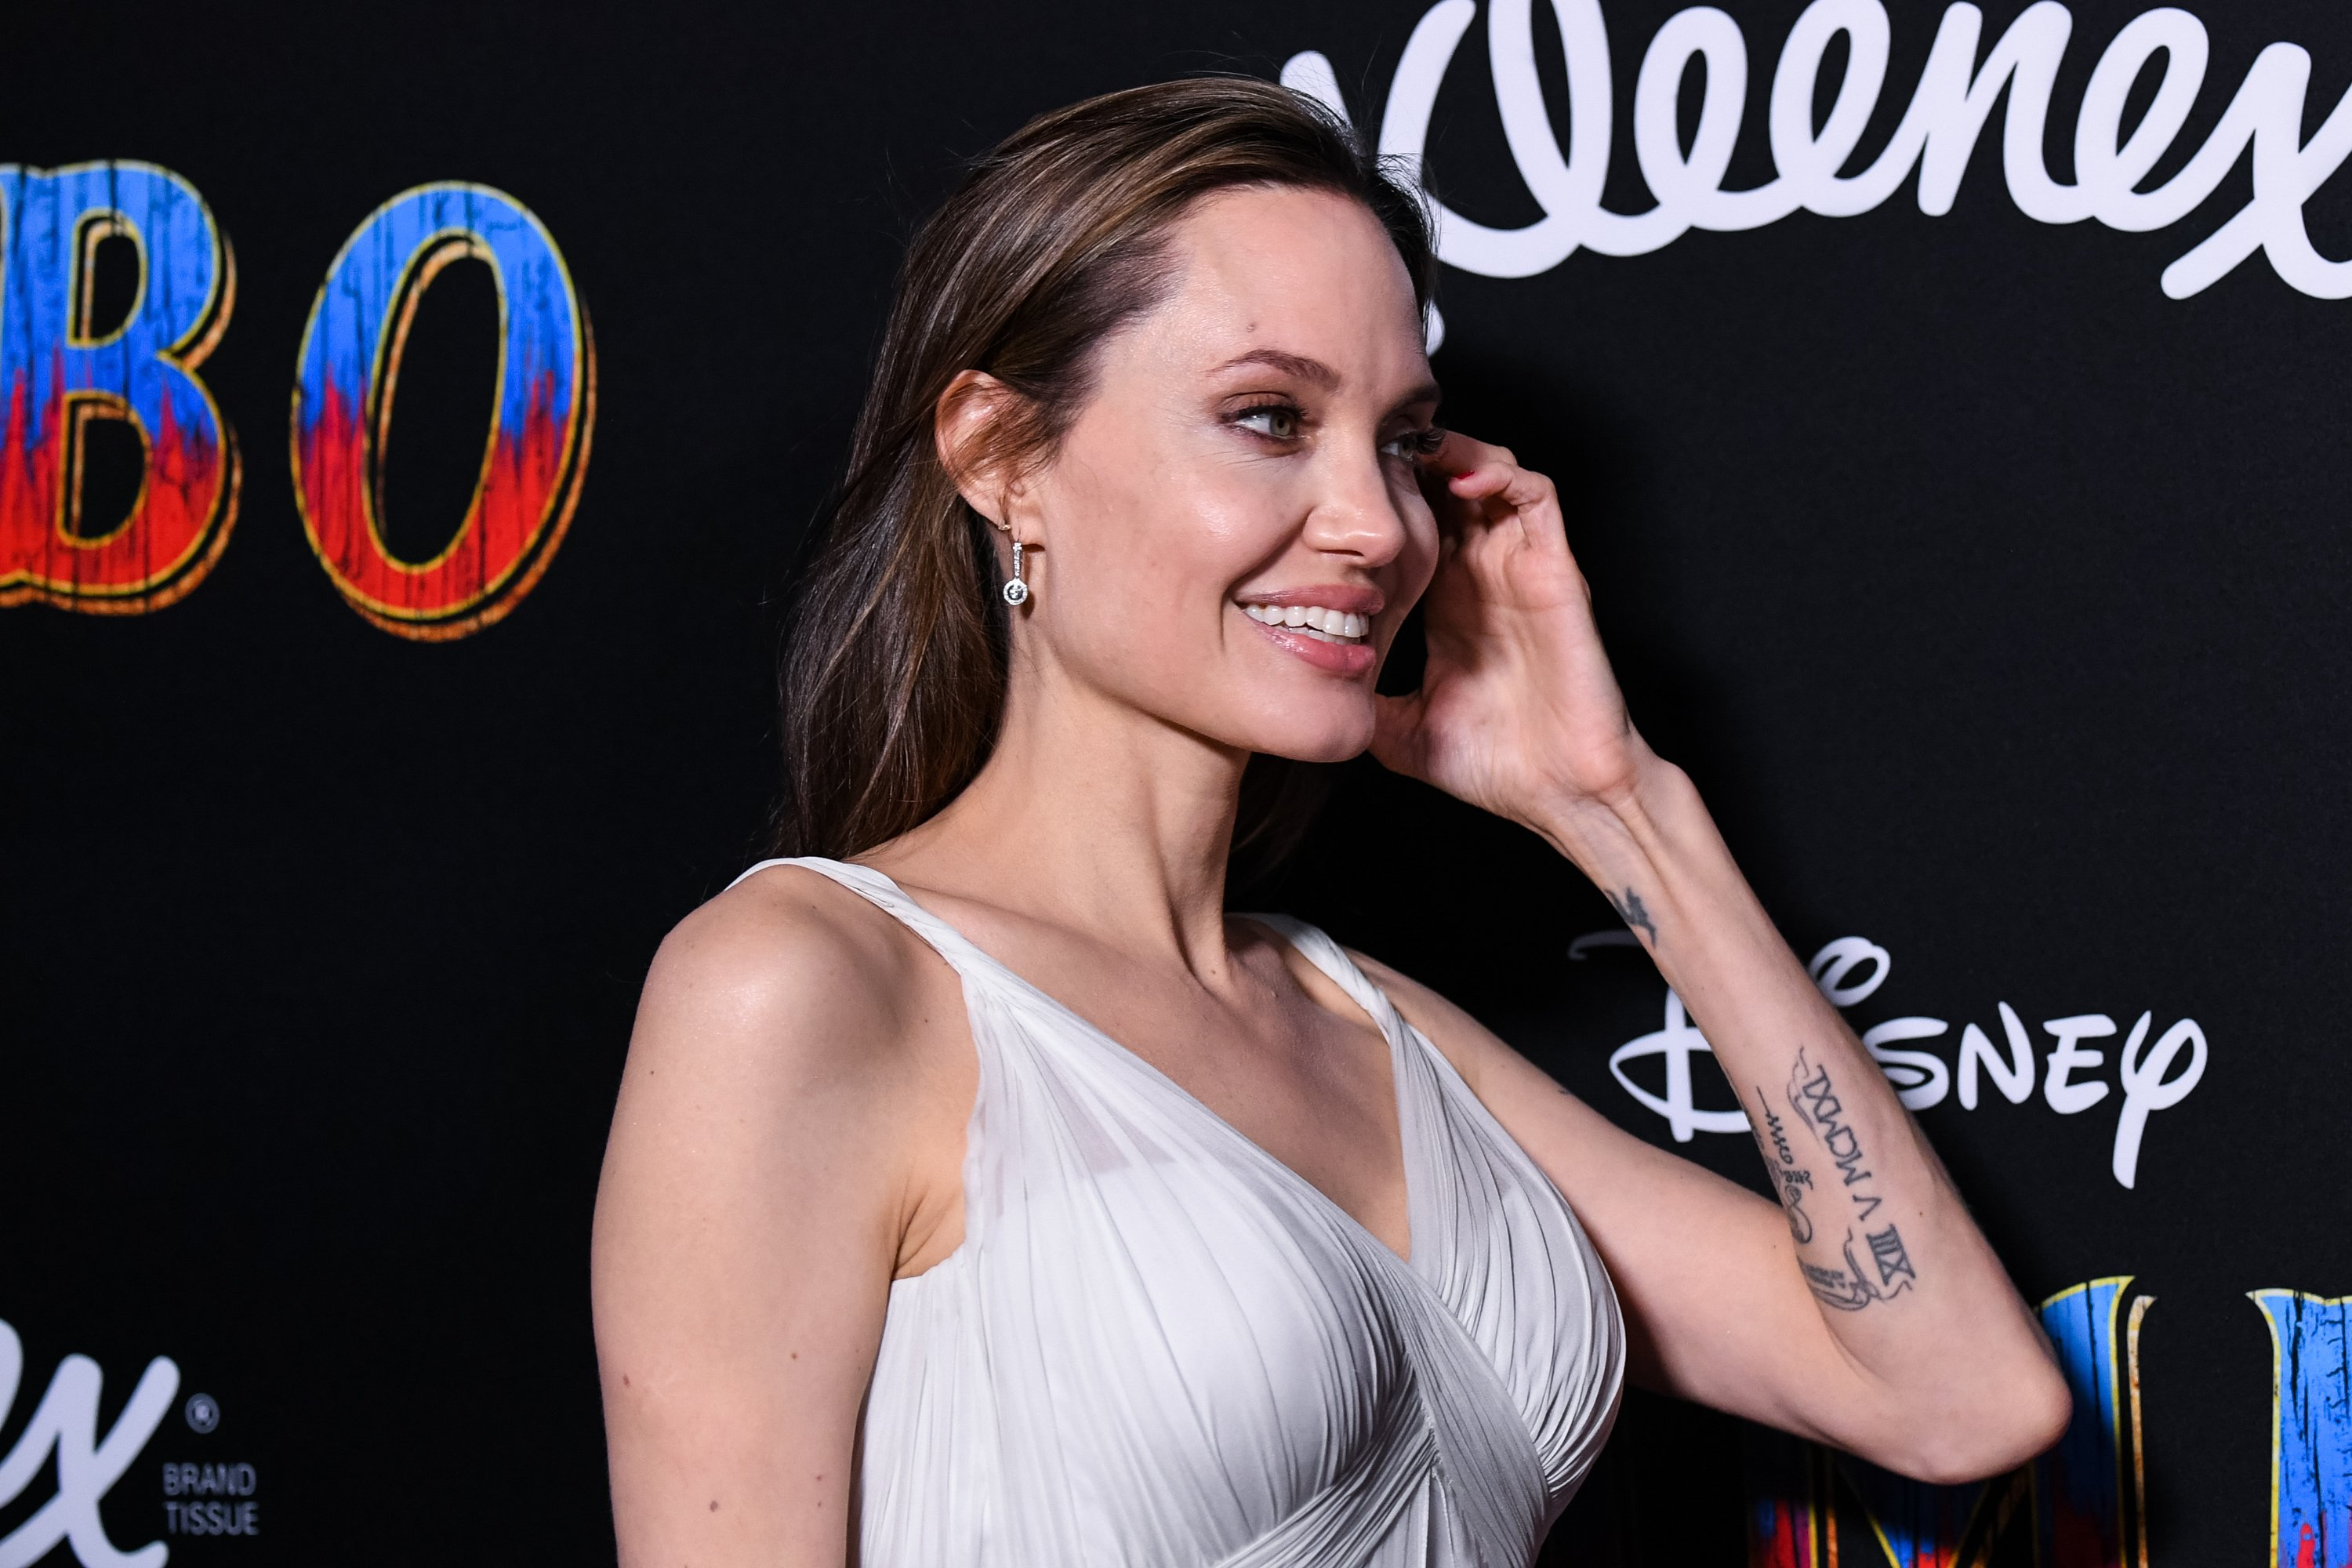 """Angelina Jolie at the premiere of Disney's film """"Dumbo"""" in 2019 in Los Angeles, California. 